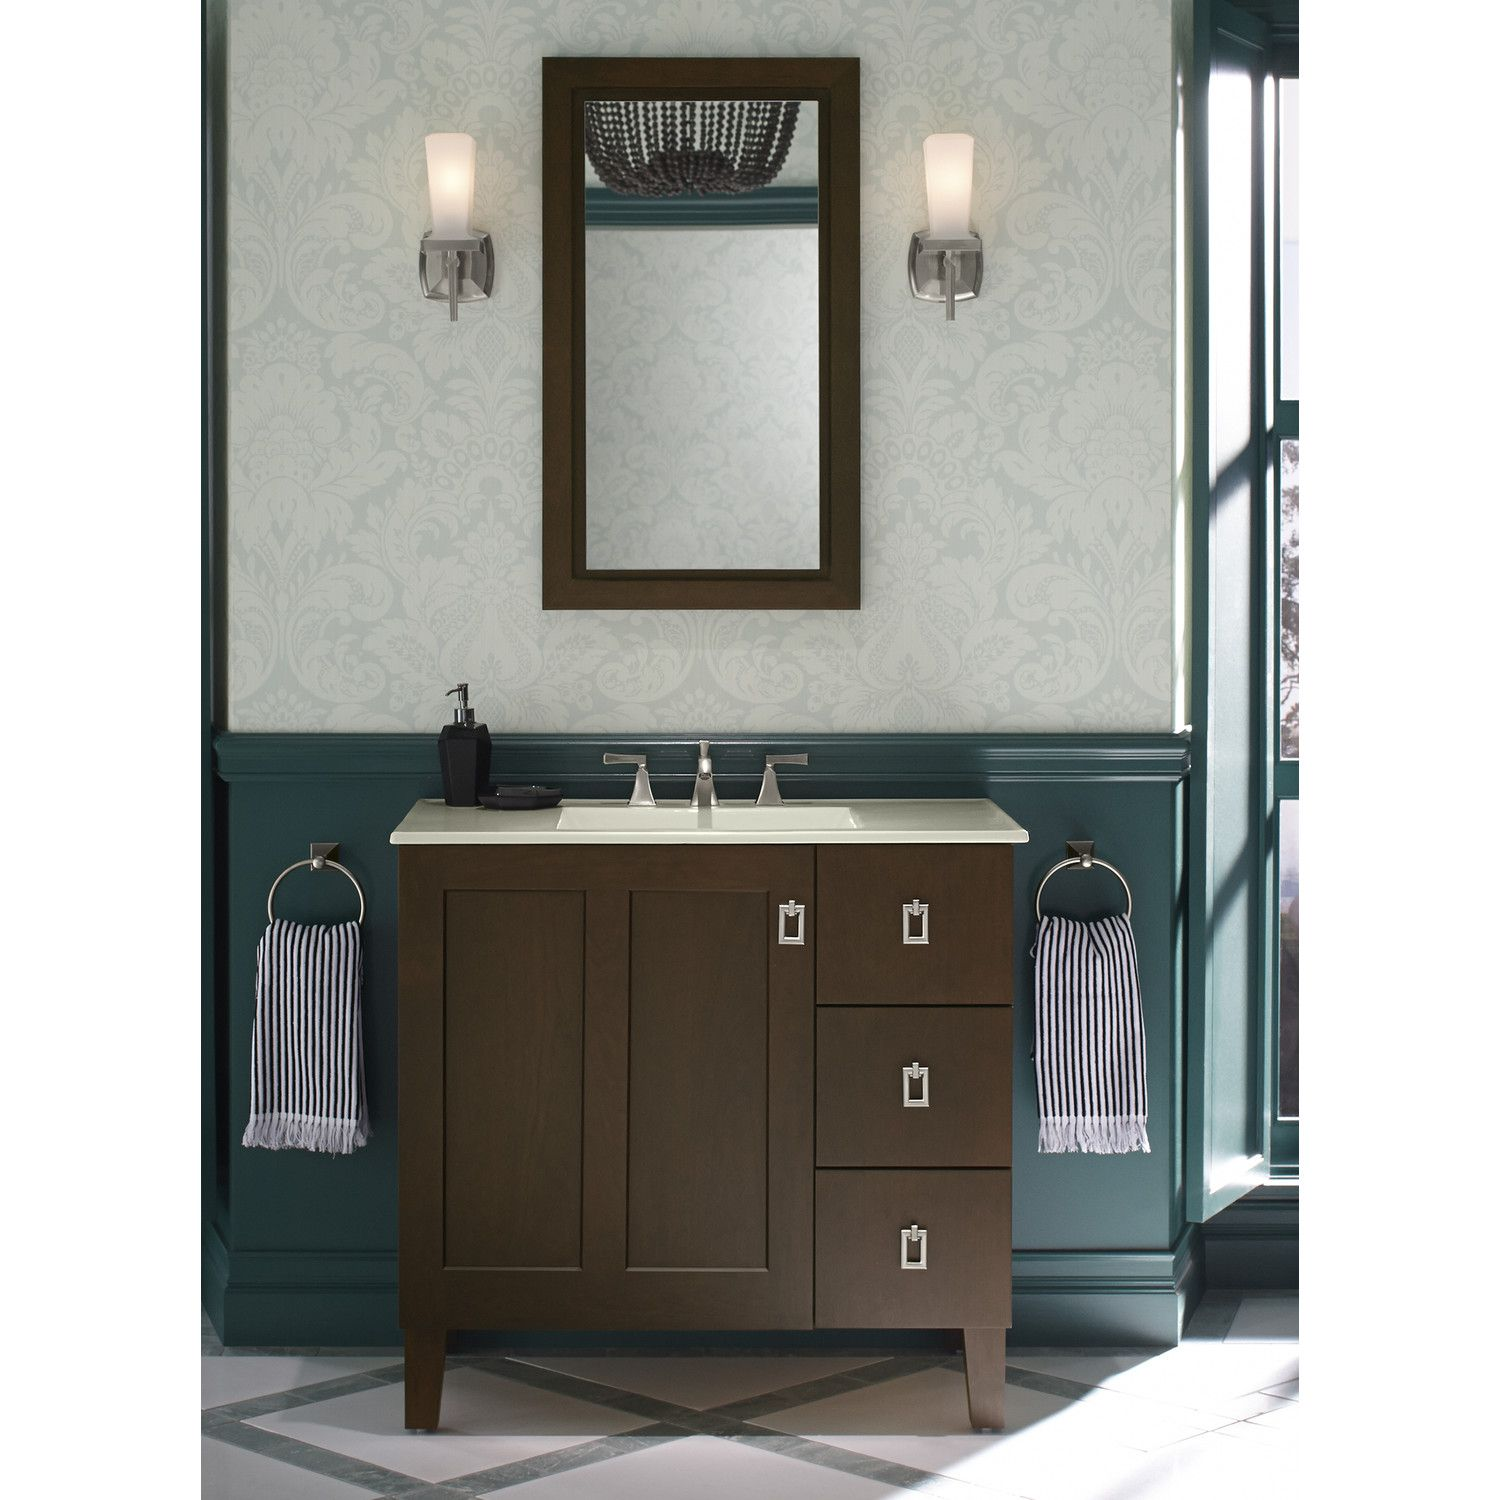 design awesome kraftmaid of h lights bathroom foremost medicine vanity unique framed w wood x surface cabinets home d depot ashburn with in